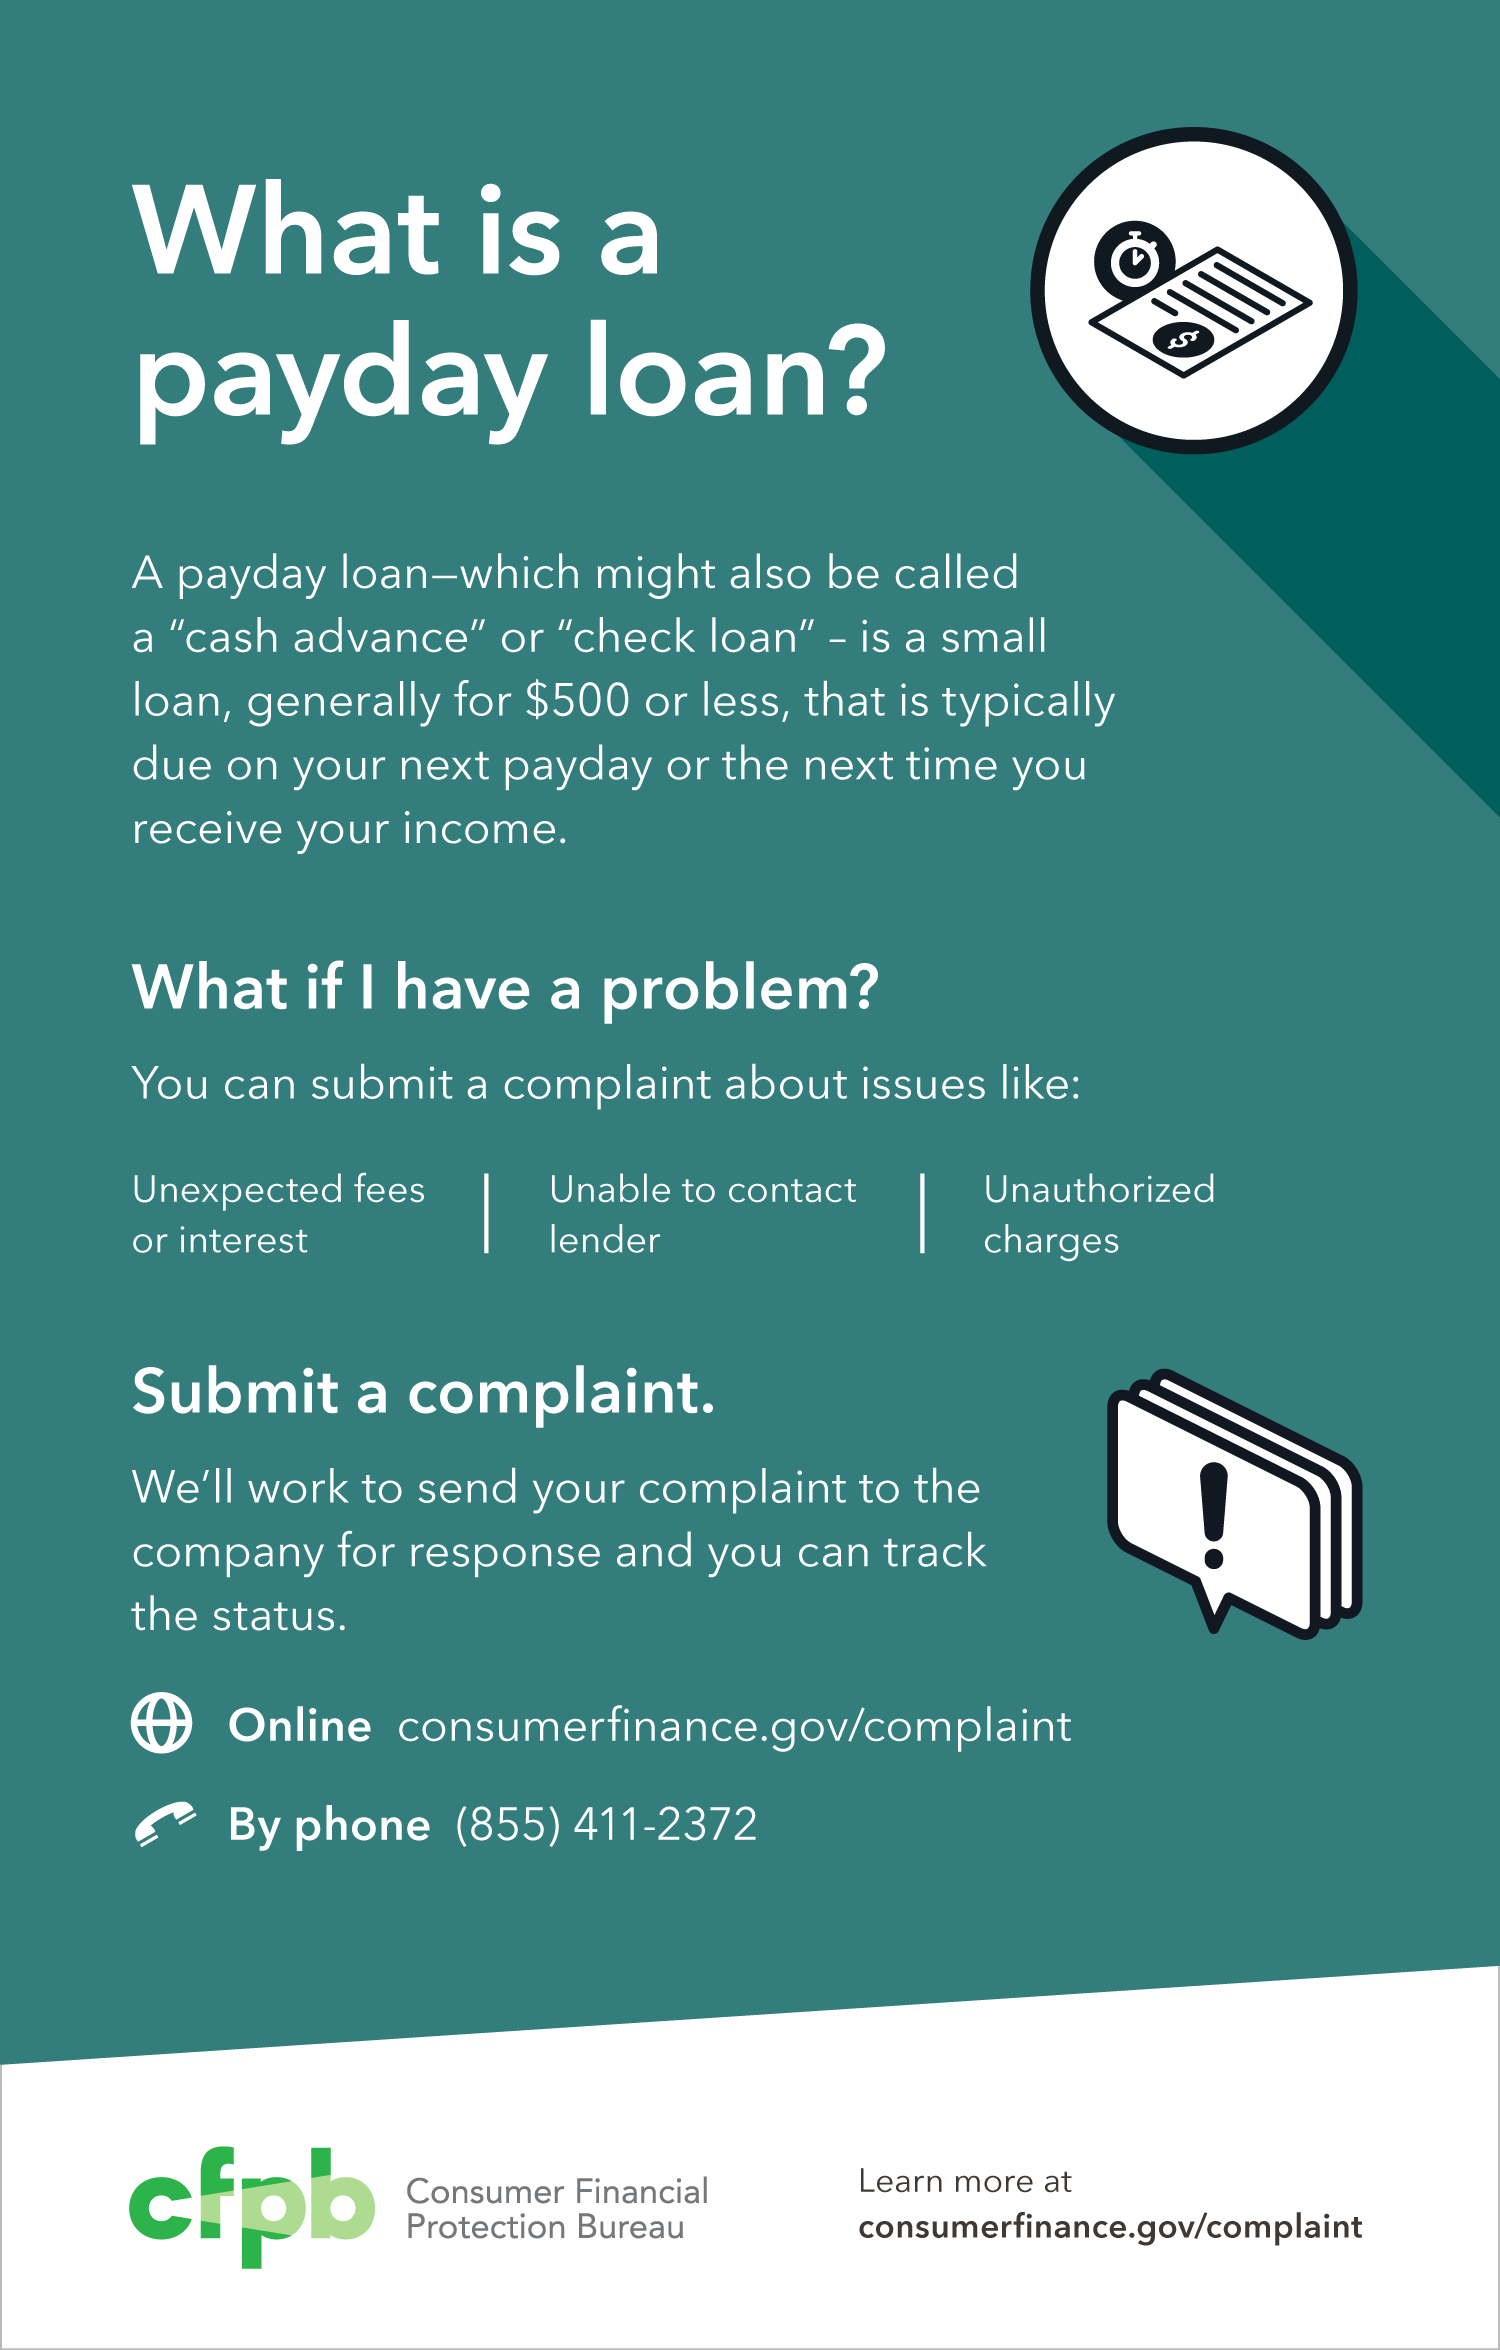 You can submit a payday loan complaint | Consumer ...